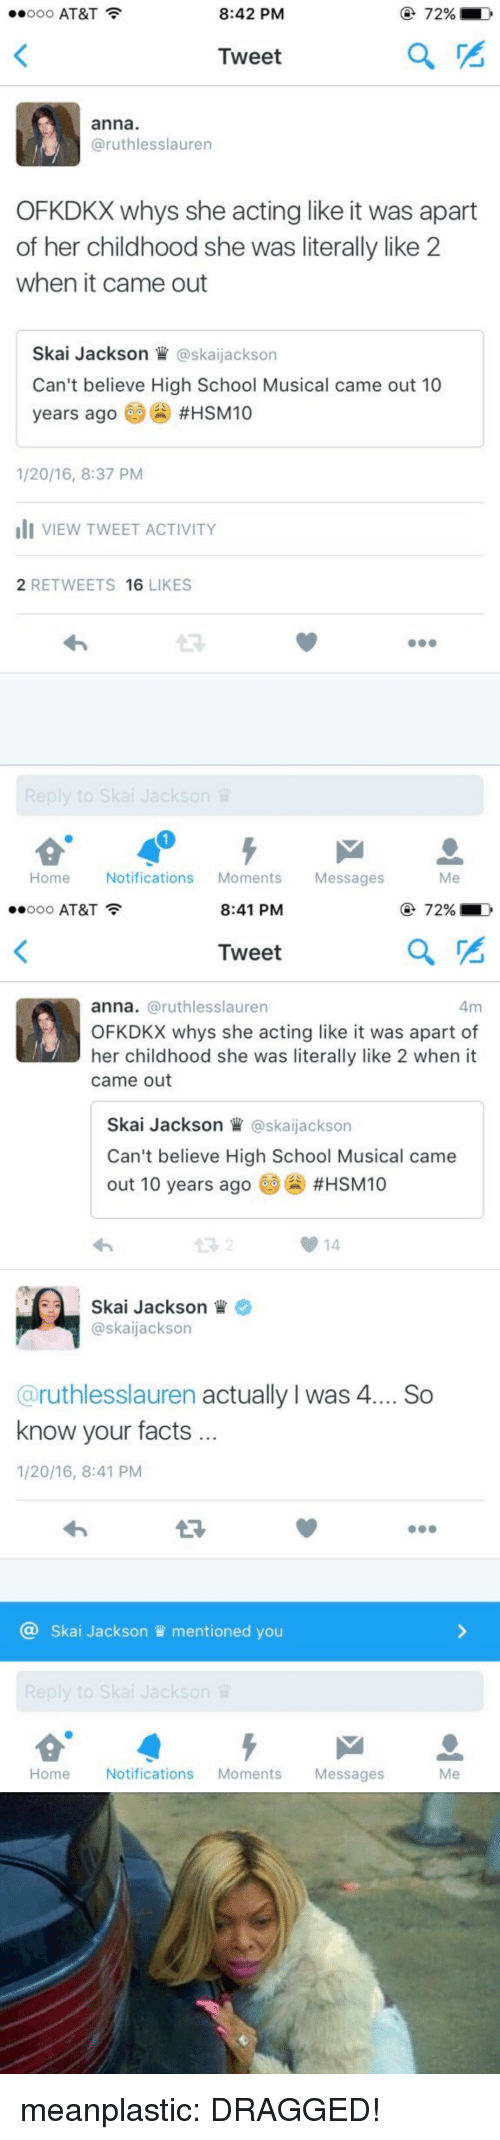 Anna, Facts, and High School Musical: ..ooo AT&T  8:42 PM  72%  Tweet  anna  @ruthlesslauren  OFKDKX whys she acting like it was apart  of her childhood she was literally like 2  when it came out  Skai Jackson W@skaijackson  Can't believe High School Musical came out 10  years ago #HSM10  1/20/16, 8:37 PM  VIEW TWEET ACTIVITY  2 RETWEETS 16 LIKES  13  Home Notifications Moments Messages  Me   ..ooo AT&T  8:41 PM  72%  Tweet  anna. @ruthlesslauren  OFKDKX whys she acting like it was apart of  her childhood she was literally like 2 when it  came out  Skai Jackson @skaijackson  Can't believe High School Musical came  out 10 years ago 60() #HSM10  14  Skai Jackson  @skaijackson  @ruthlesslauren actually I was 4... So  know your facts  1/20/16, 8:41 PM  13  @ Skai Jackson mentioned you  Home Notifications Moments Messages  Me meanplastic:  DRAGGED!